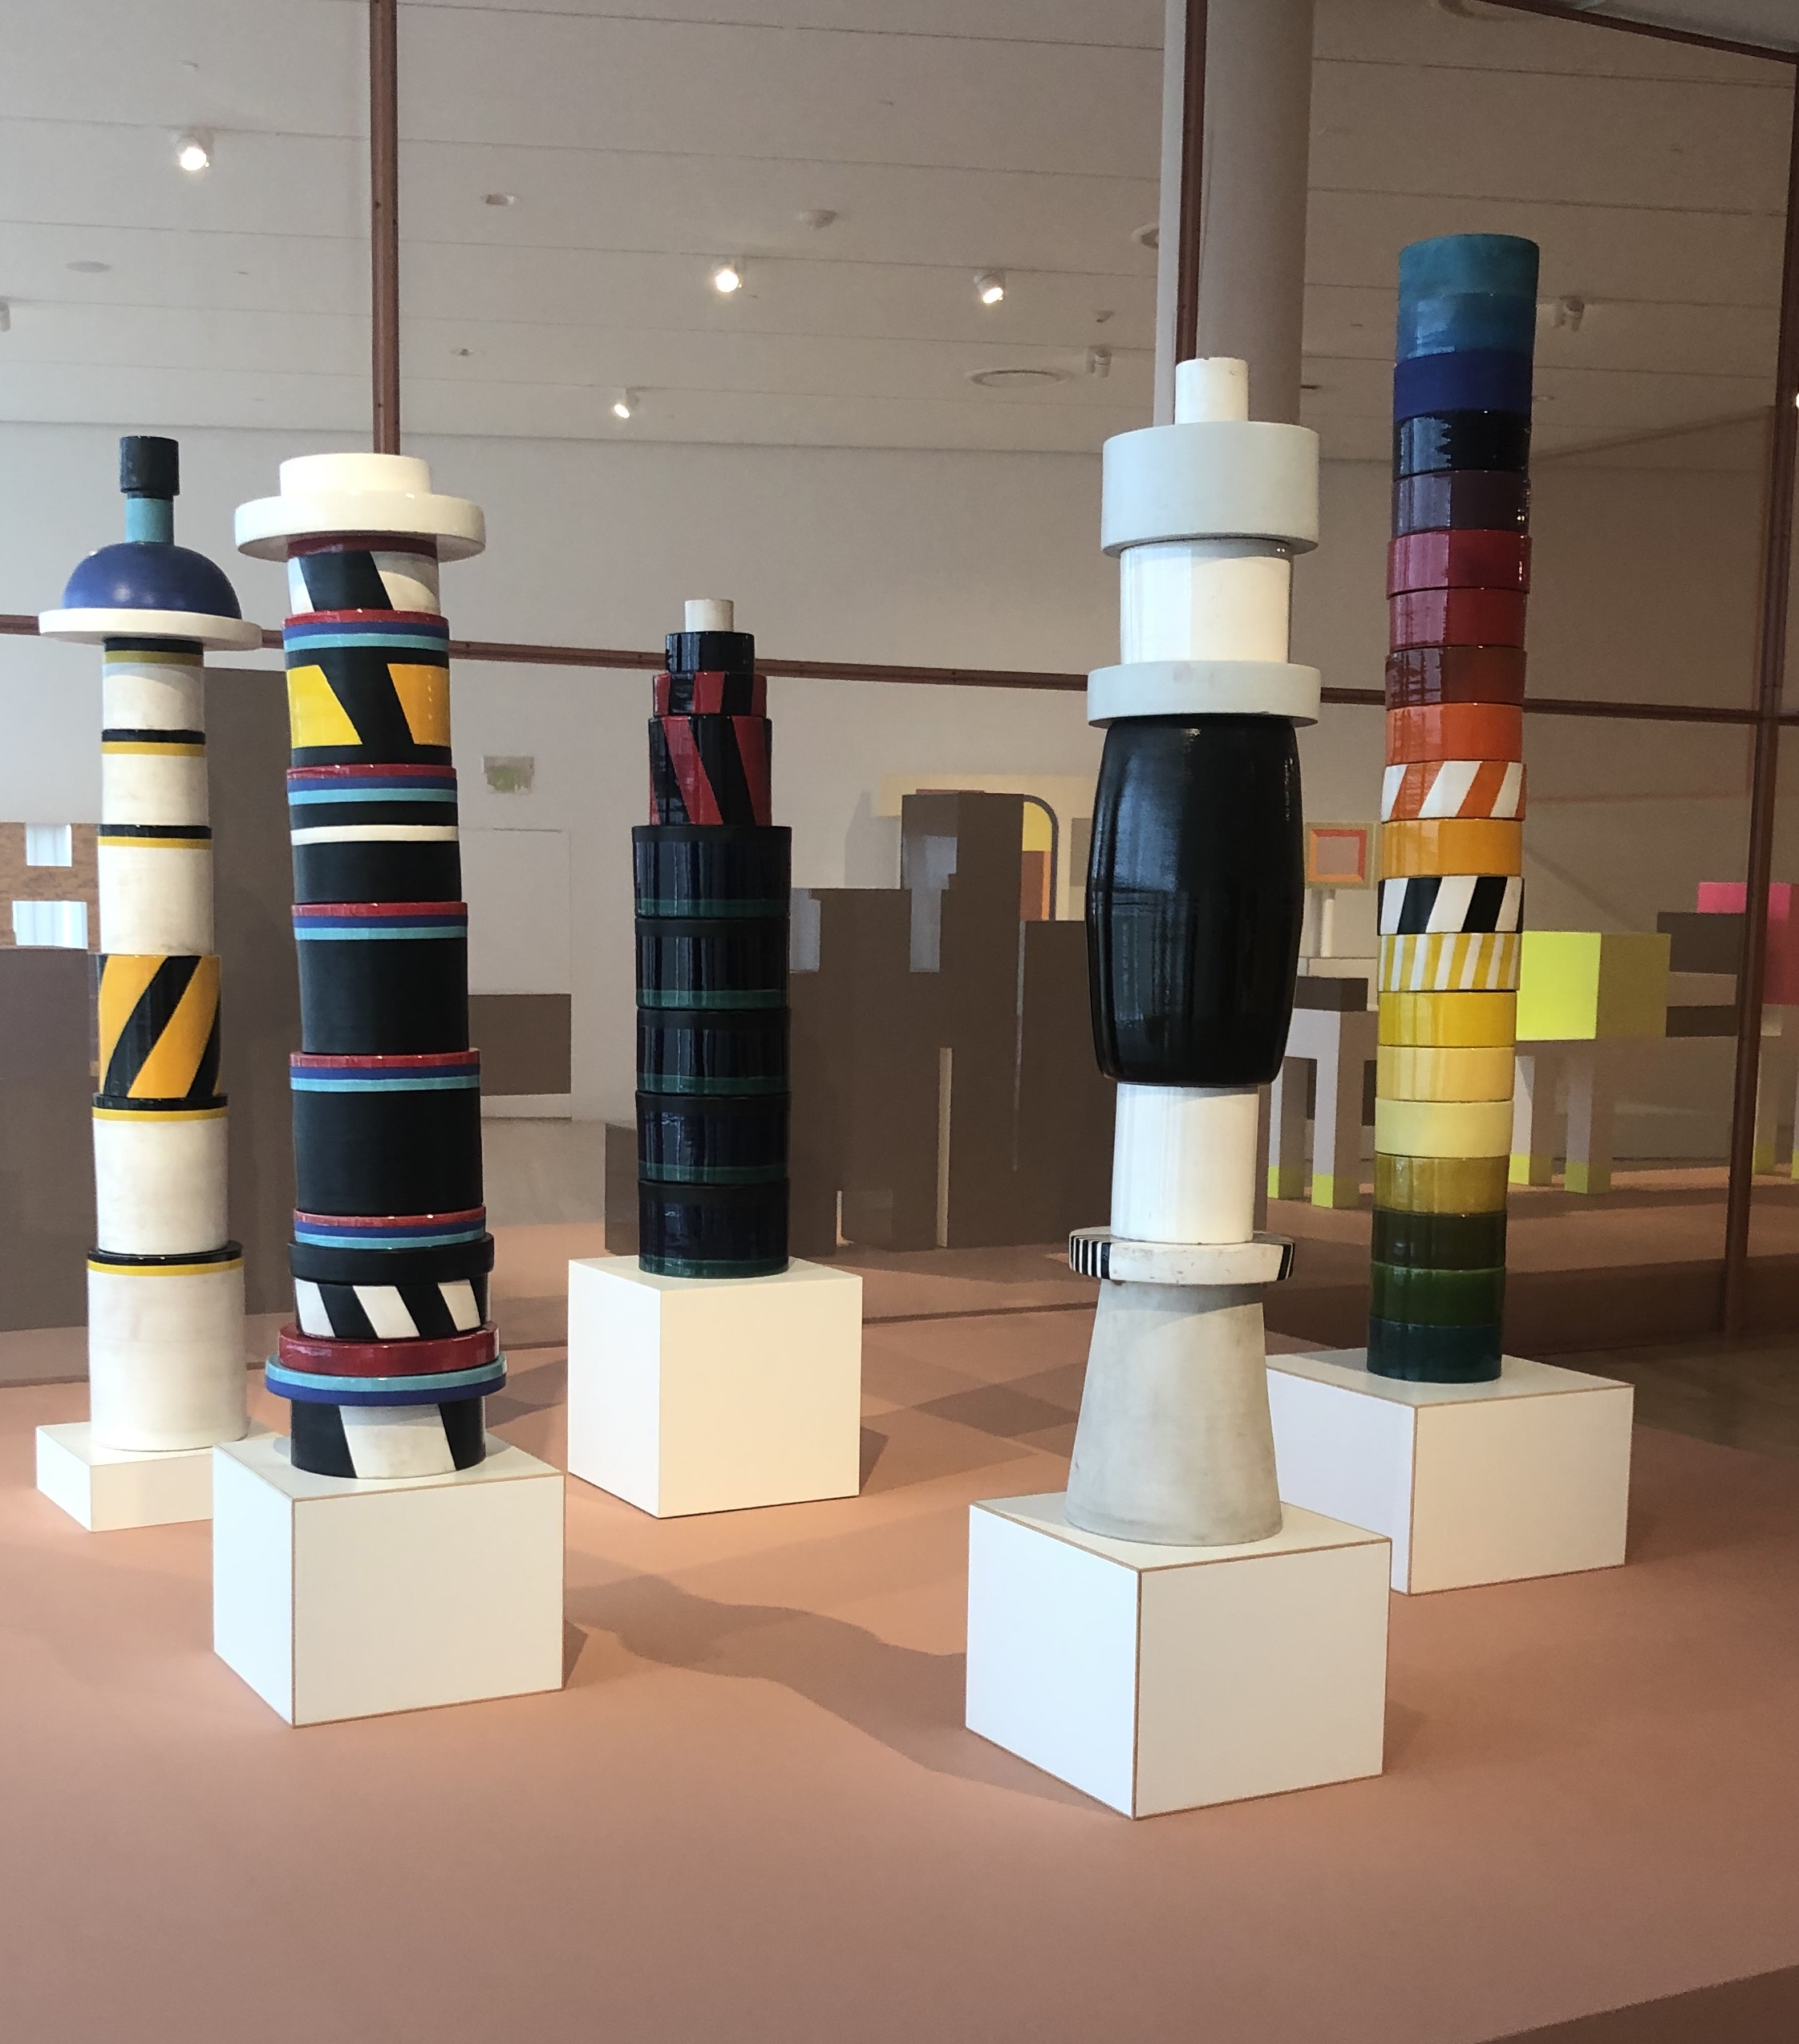 Sottsass Exhibition at ICA Miami